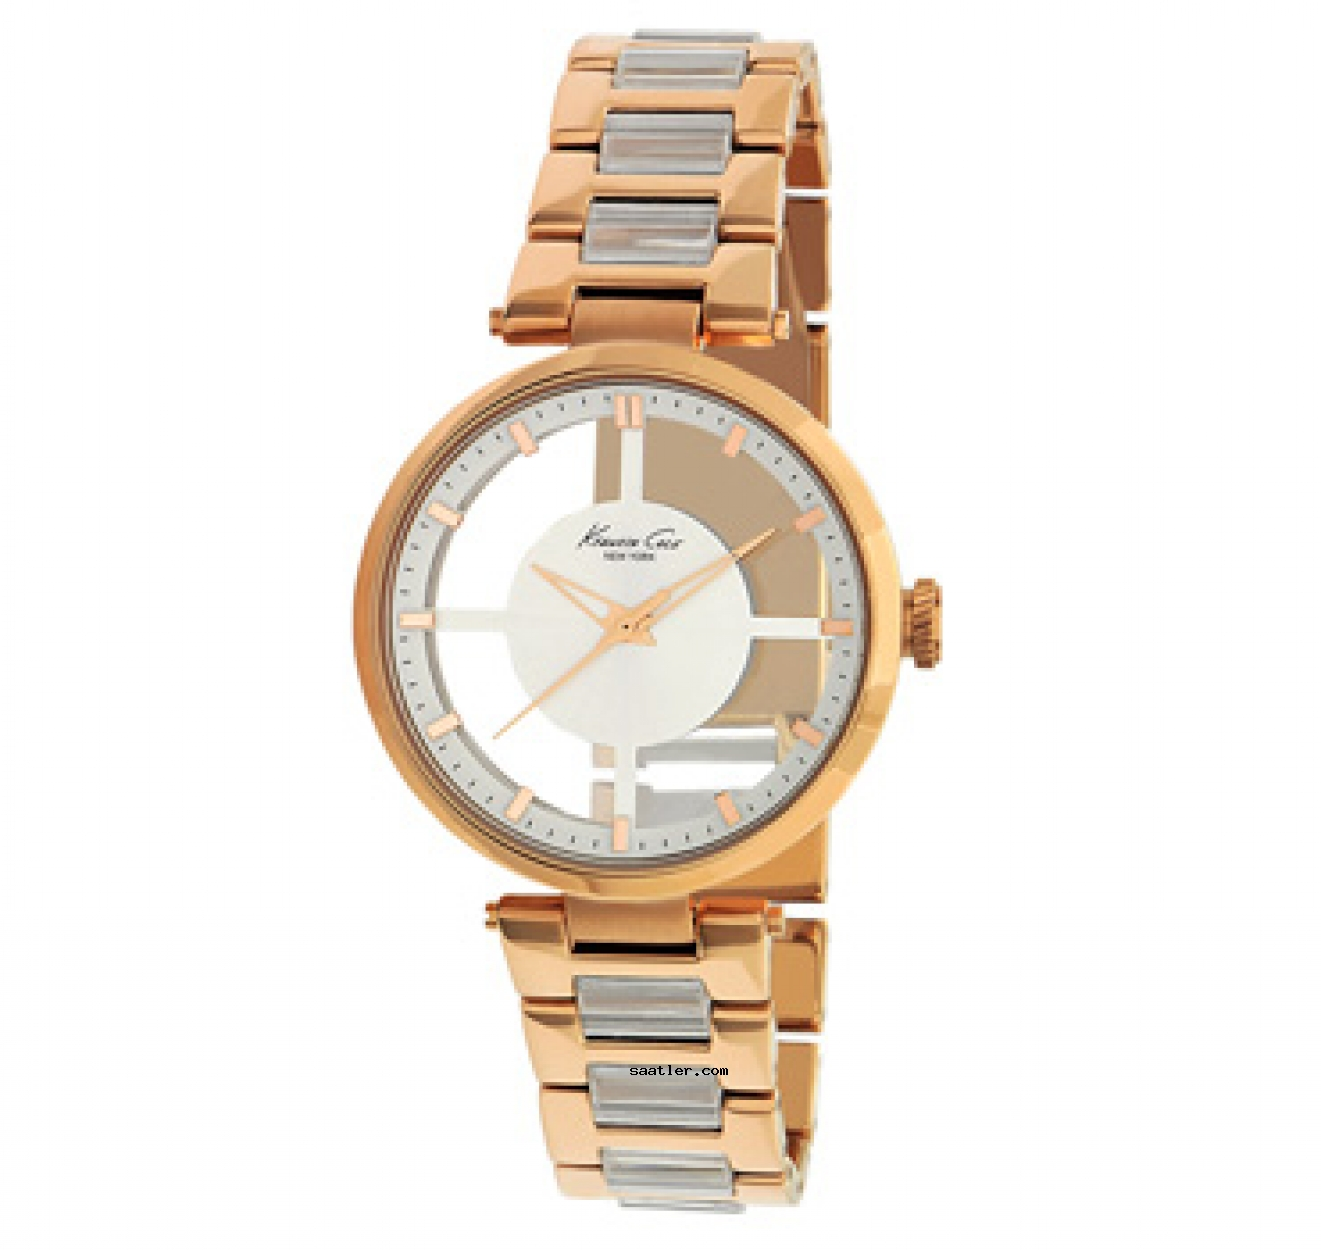 Kenneth cole часы kc1522